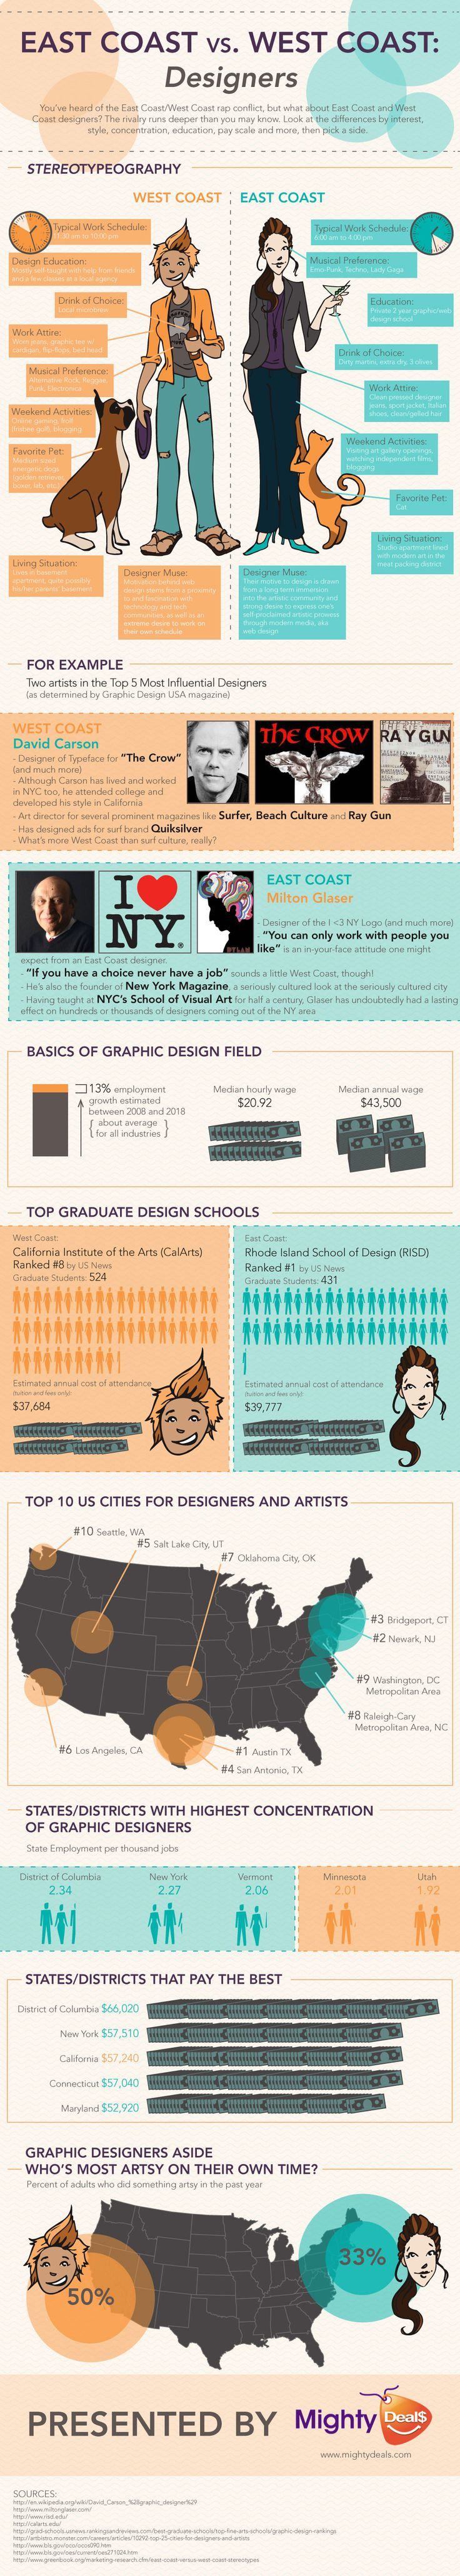 east coast vs west coast designers by MightyDeals Must say I disagree and I am definitely more of a East Coaster but interesting infographic